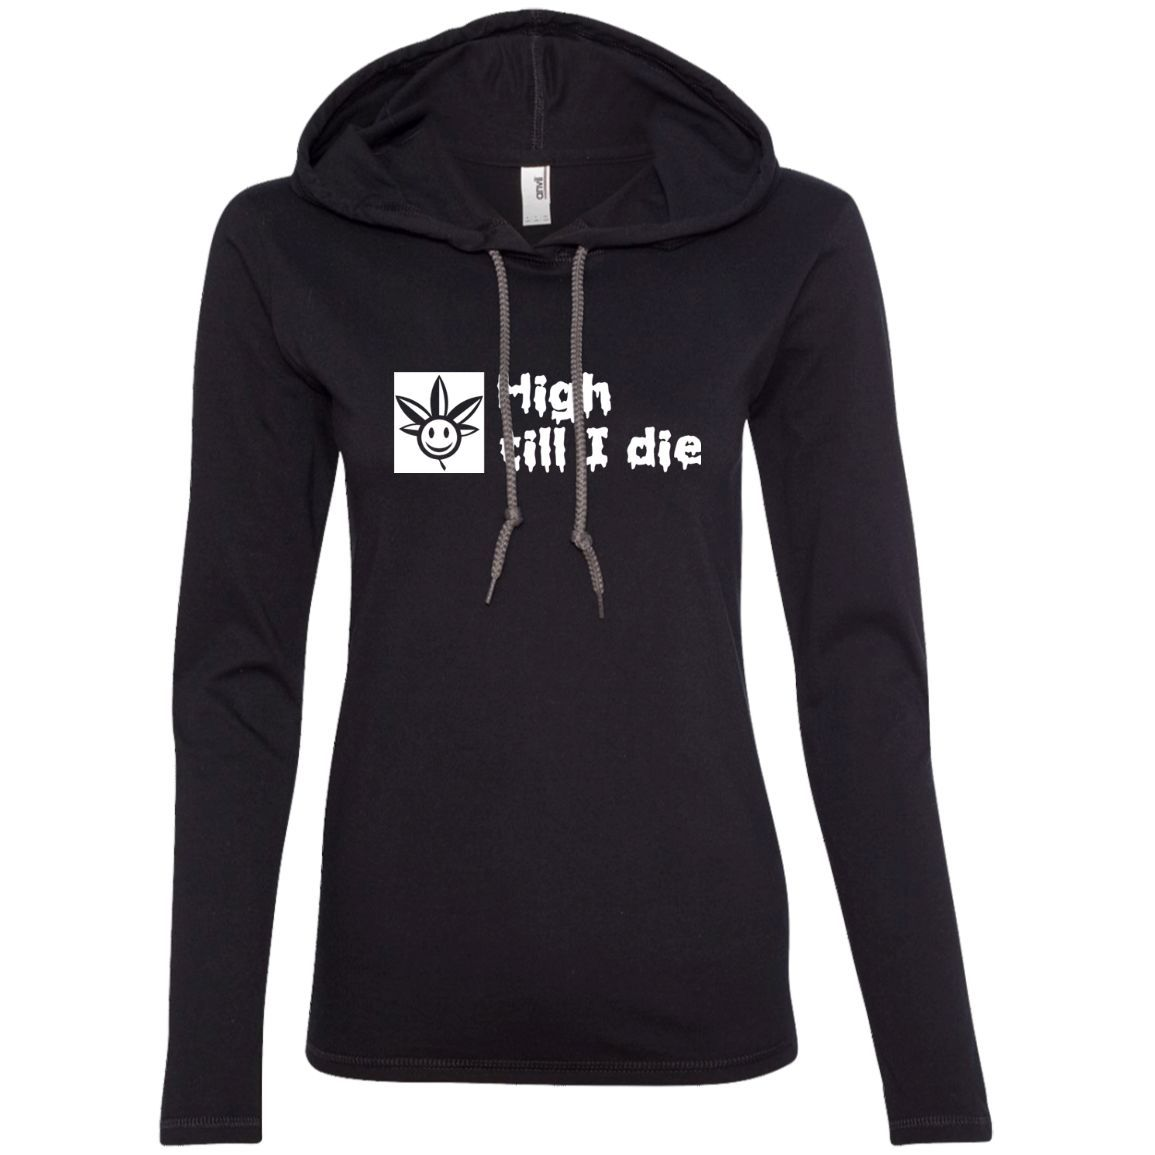 High till i die ladies tshirt hoodie products i and stills